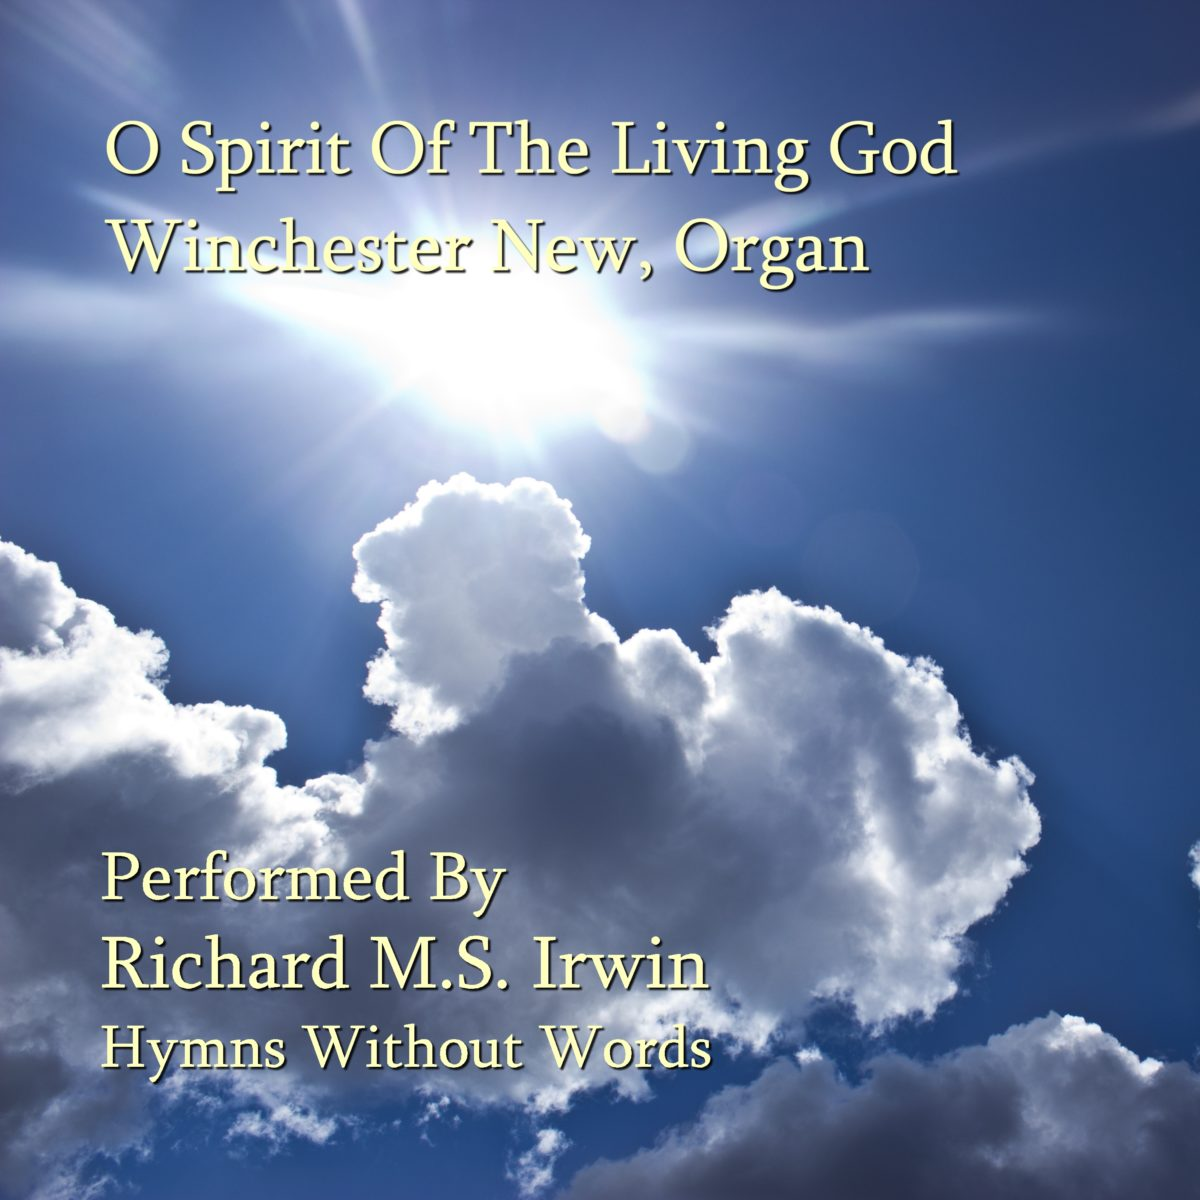 O Spirit Of The Living God (Winchester New, Organ, 5 Verses)